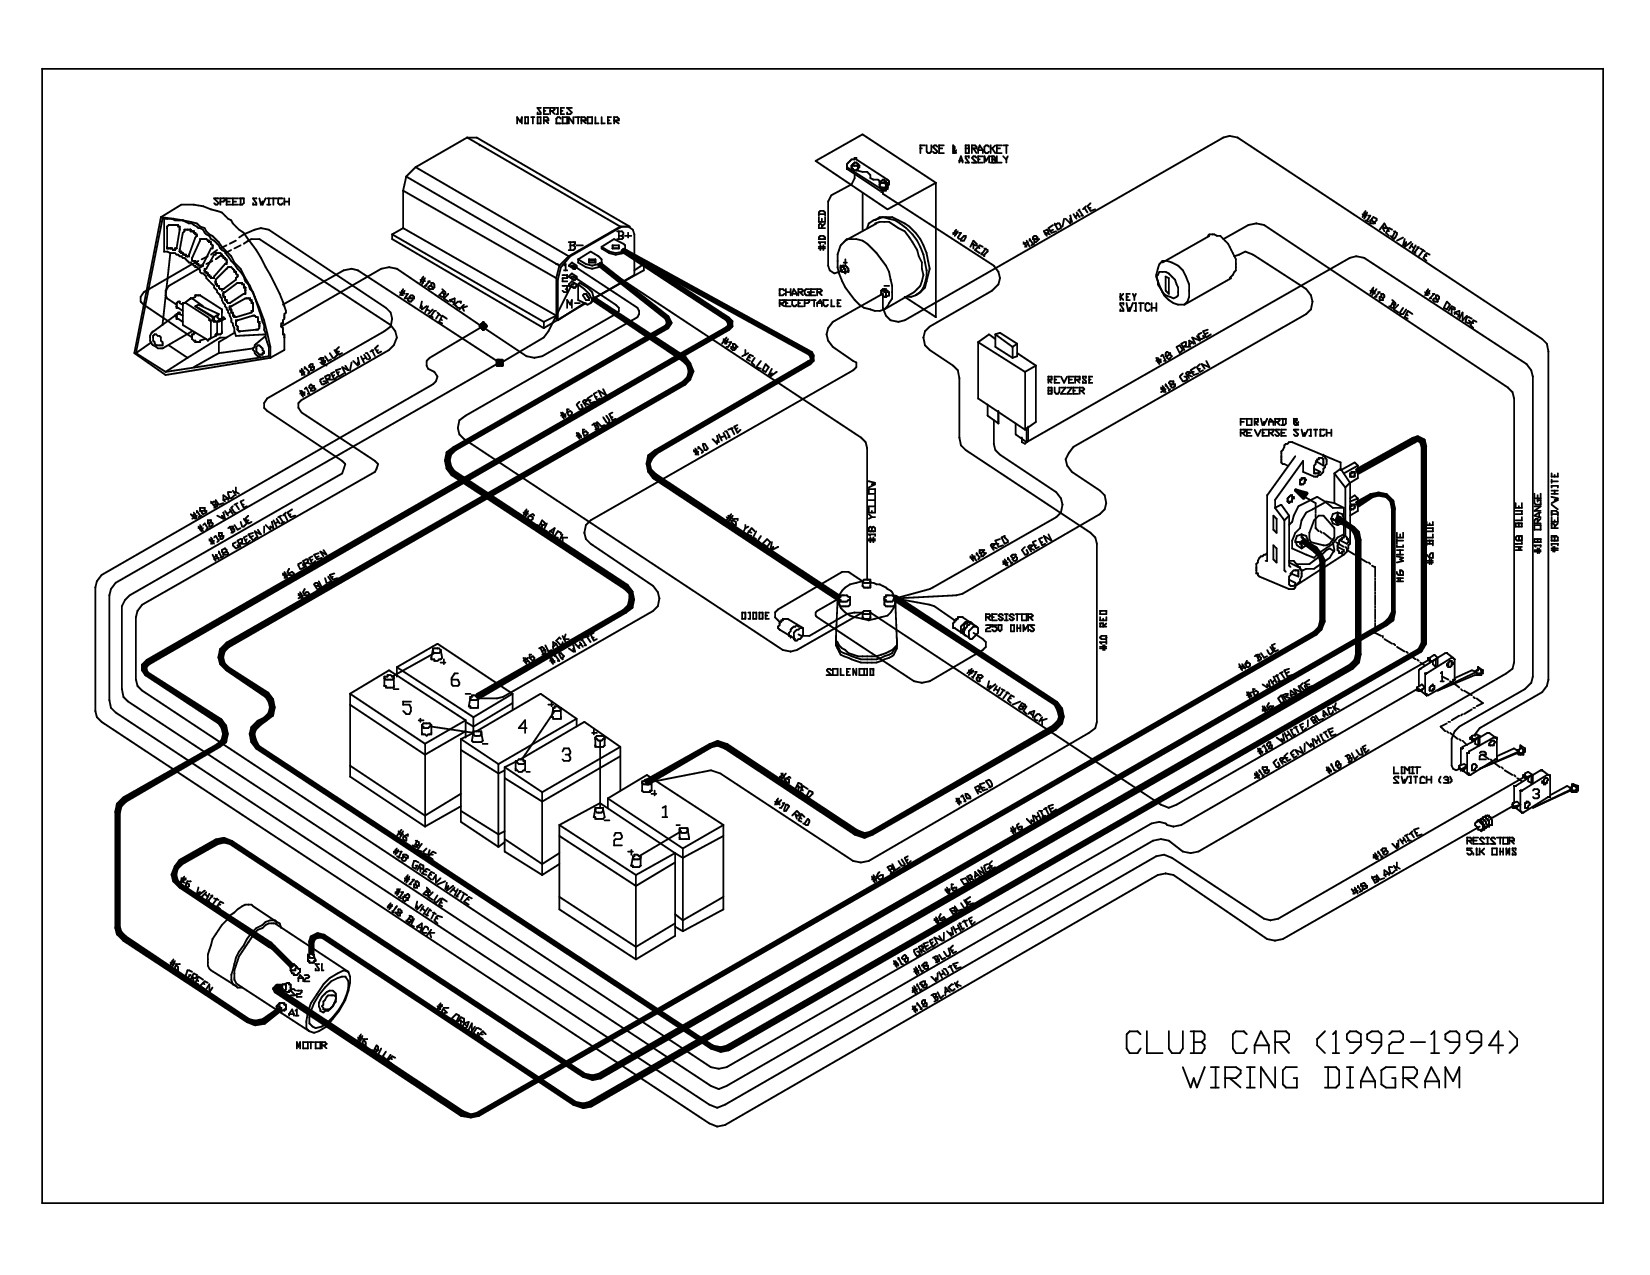 1994 Ezgo Gas Engine Wiring Diagram 1995 Club Car Wiring Diagram Of 1994 Ezgo Gas Engine Wiring Diagram 1995 Club Car Wiring Diagram